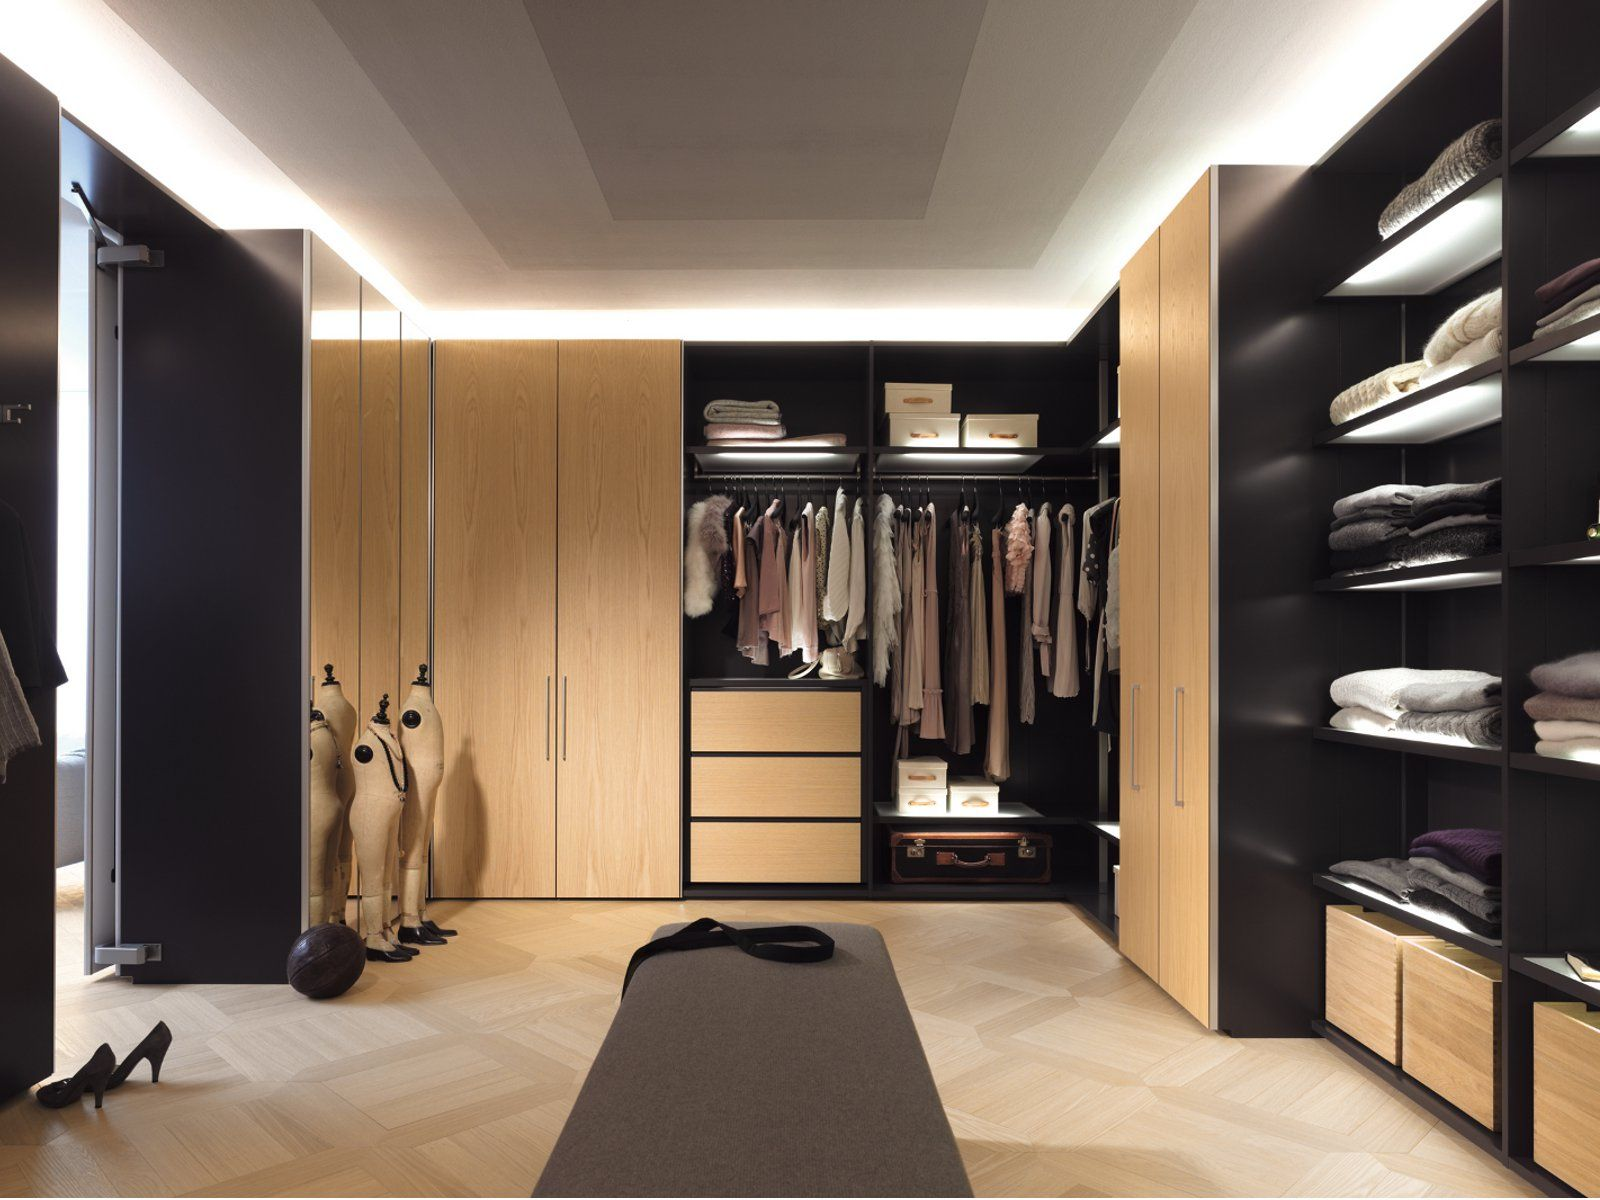 Exceptionnel Charming Wooden L Shaped Wardrobe Closet Cabinet System With Open Shelves  Clothing Storage And Drawers As Well As Hidden Sliding Door In Modern Walk  In ...